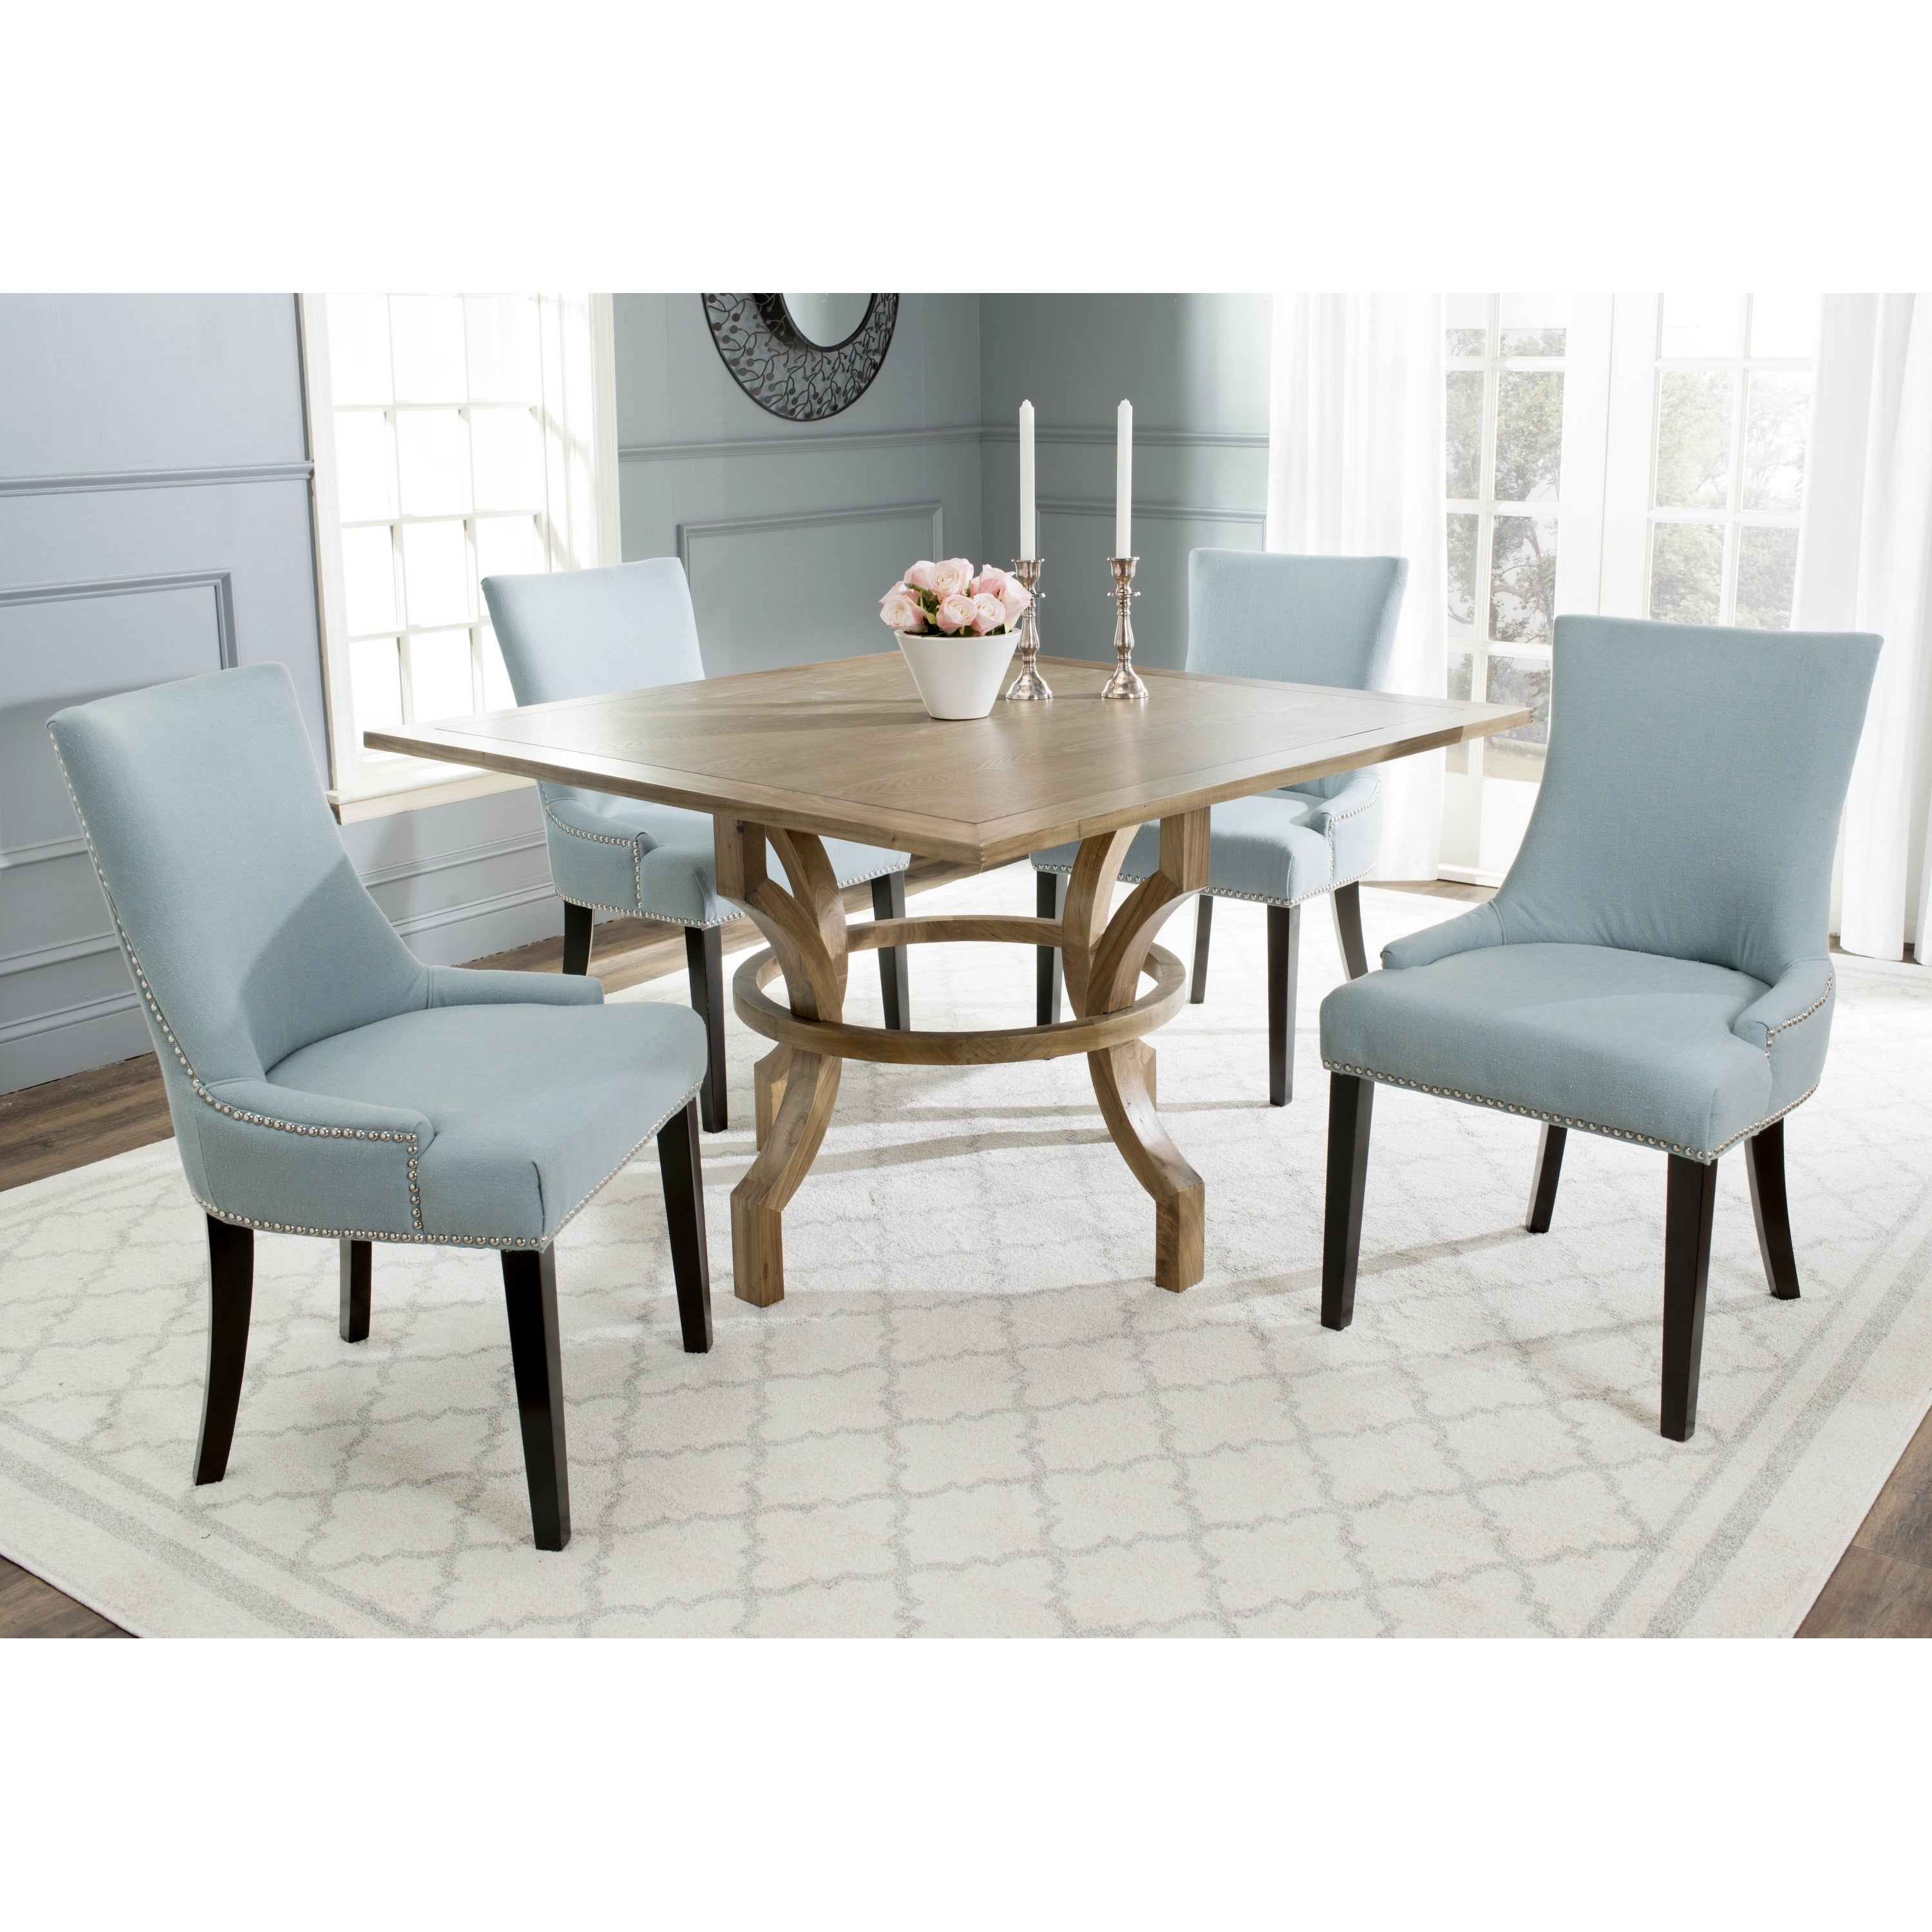 Shop safavieh ludlow oak square dining table free shipping today shop safavieh ludlow oak square dining table free shipping today overstock 9542211 watchthetrailerfo